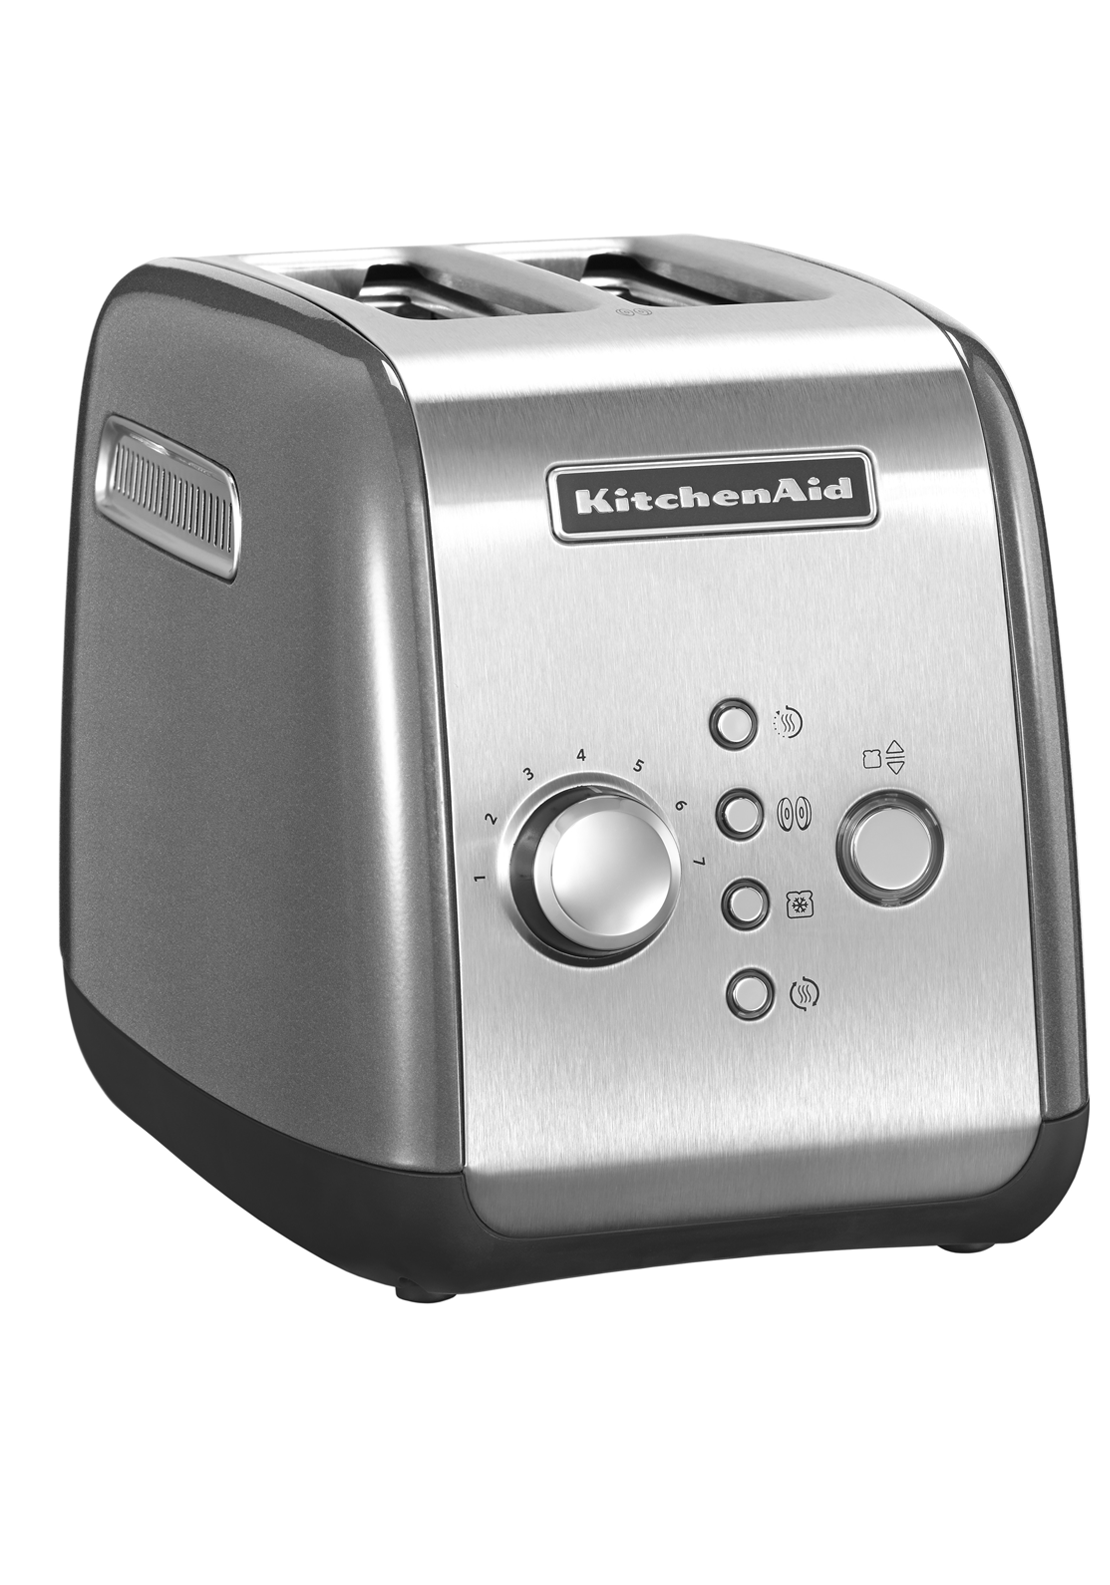 KitchenAid 2 Slice Motorized Toaster, Silver